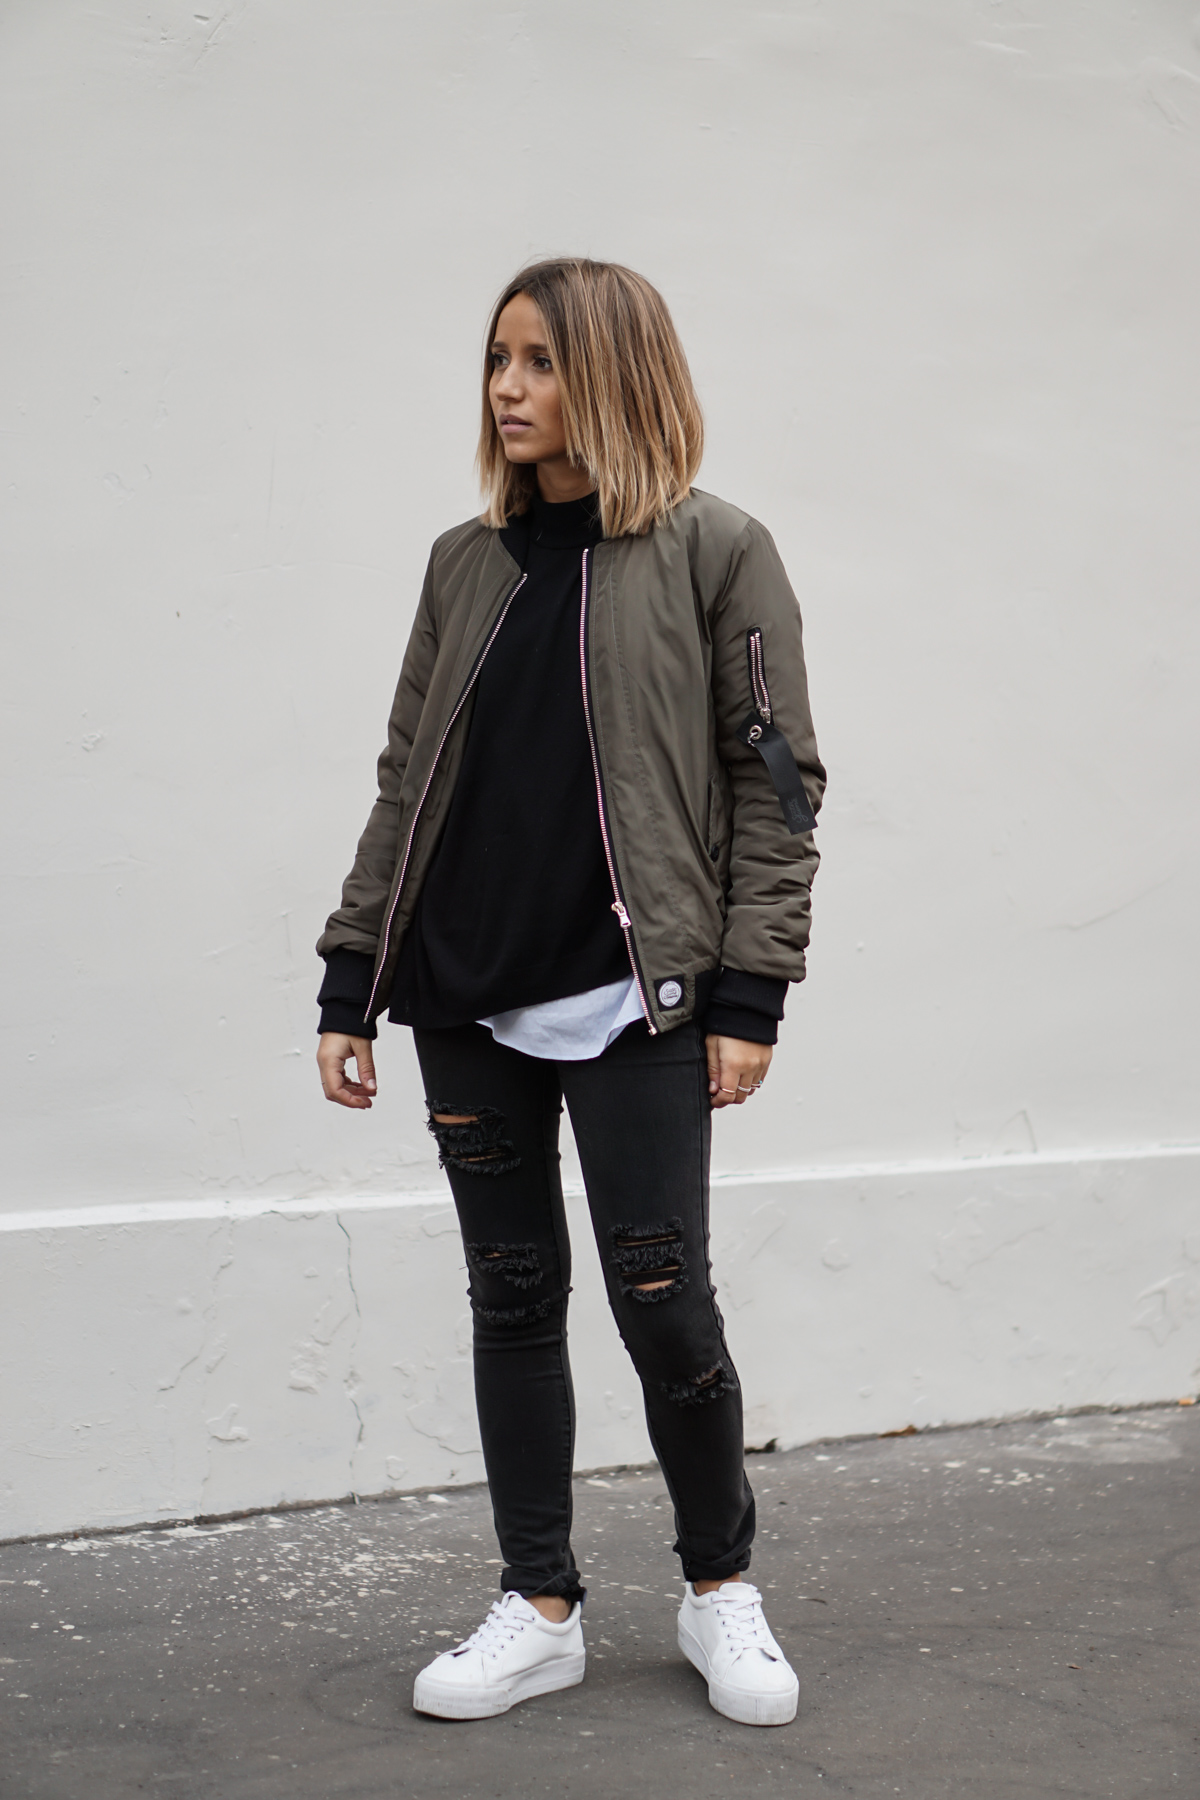 Style Tips On How To Wear A Bomber Jacket